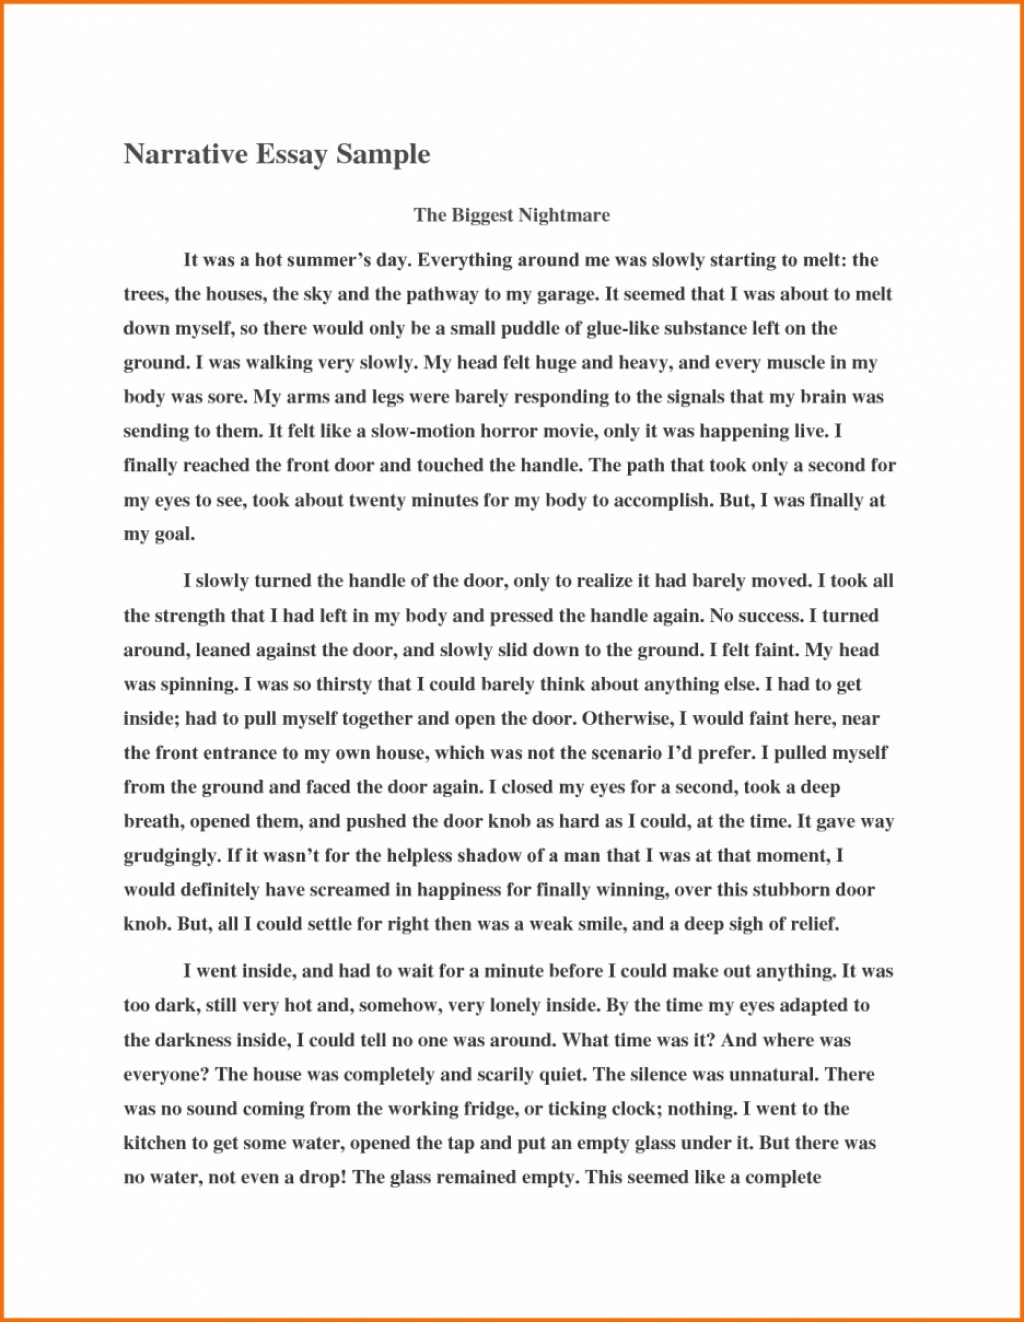 014 Essay Yourself Sample Essays About Examples Scholarship Tell Introduction Pdf Tumblr Mba Reflective Ideas Informative An In Spanish Metaphor Example Talk Write Narrative 936x1209 How Singular To A Short Myself Paper Without Using I Large